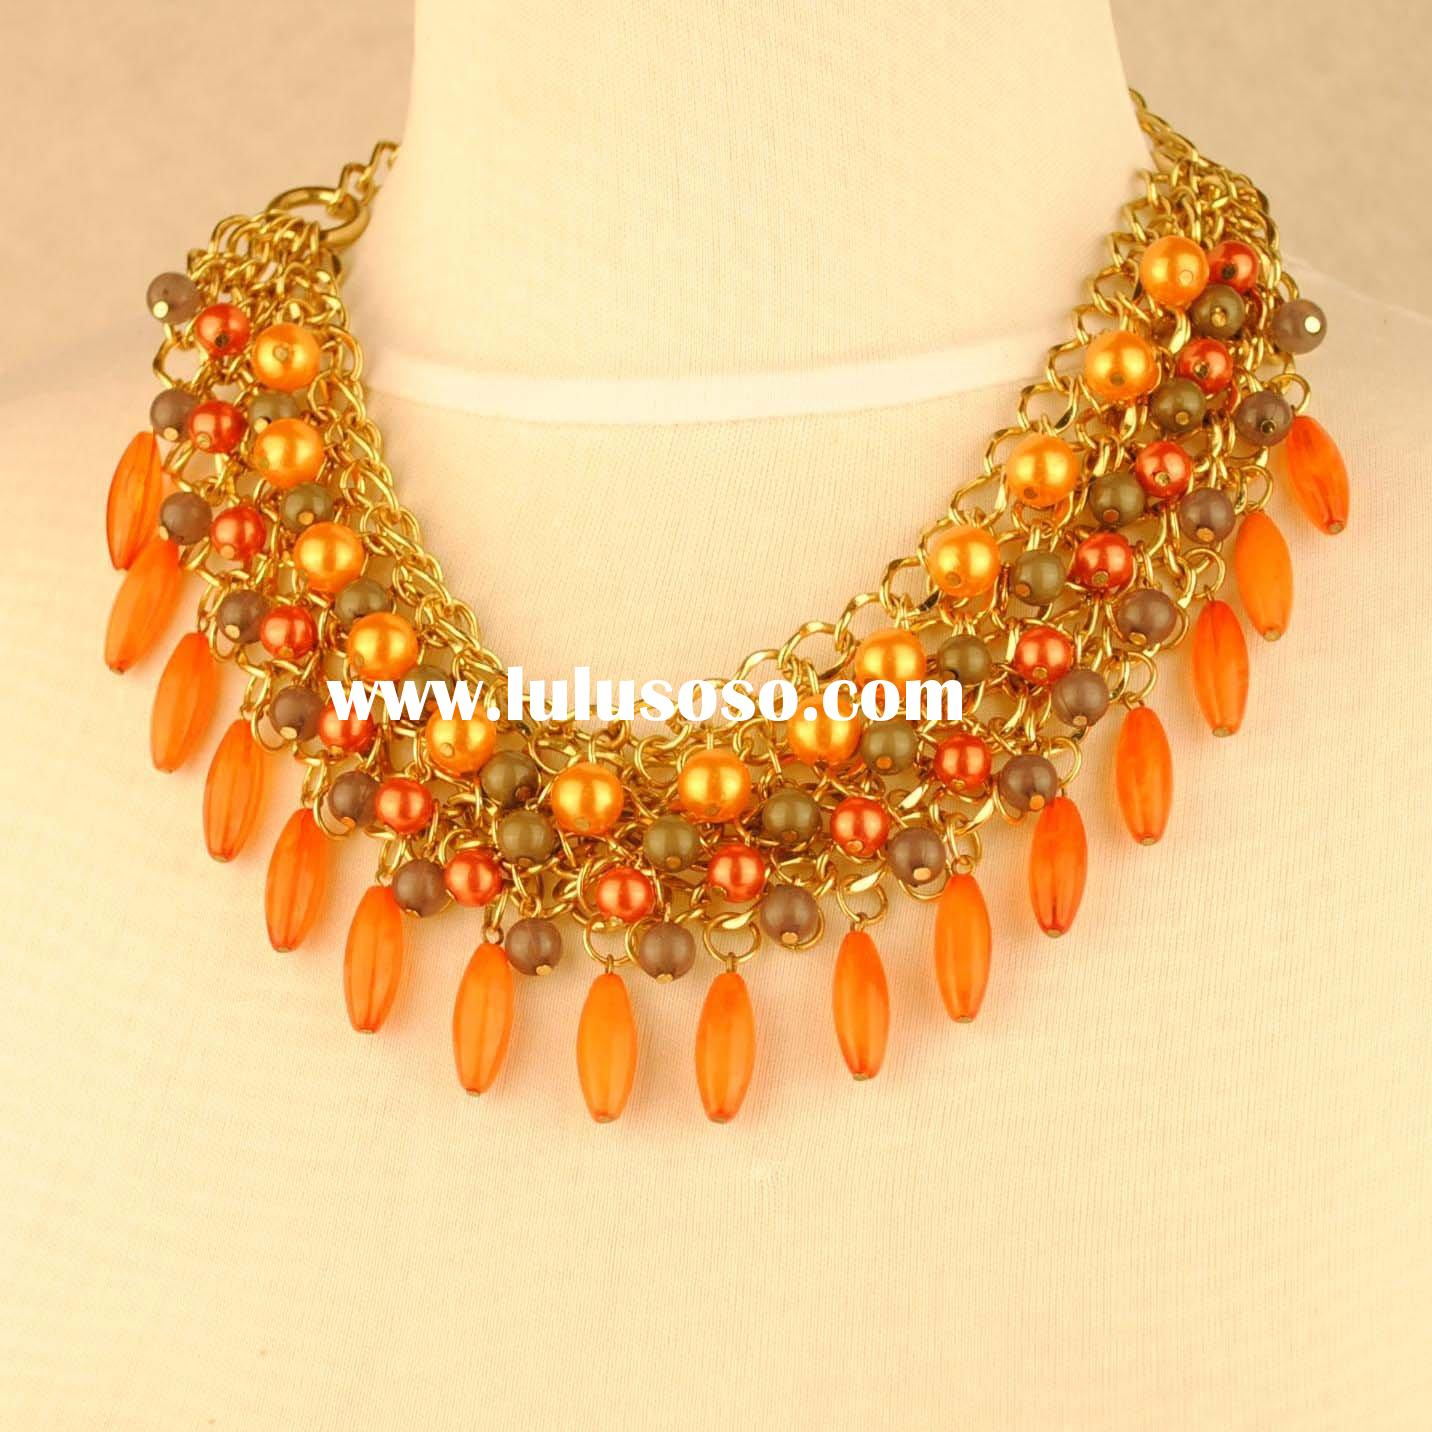 Fashion pearl and acrylic beads necklace